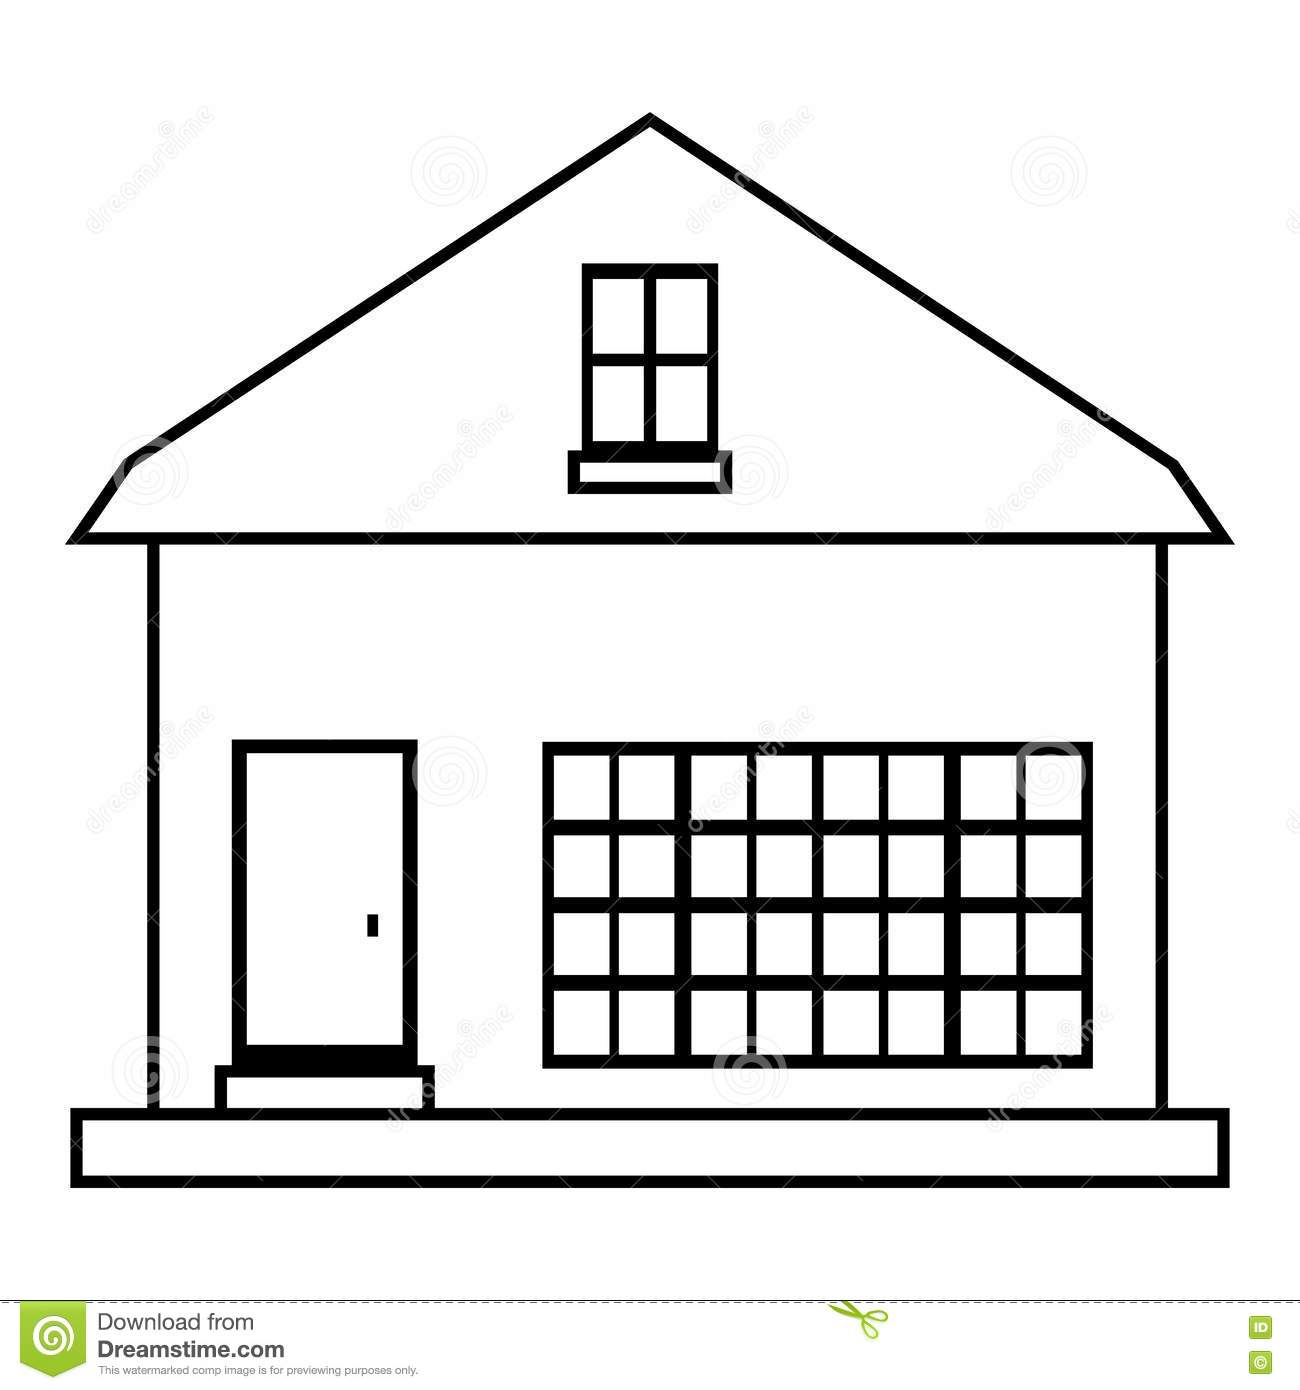 House outline picture - Design House Icon Illustration Outline